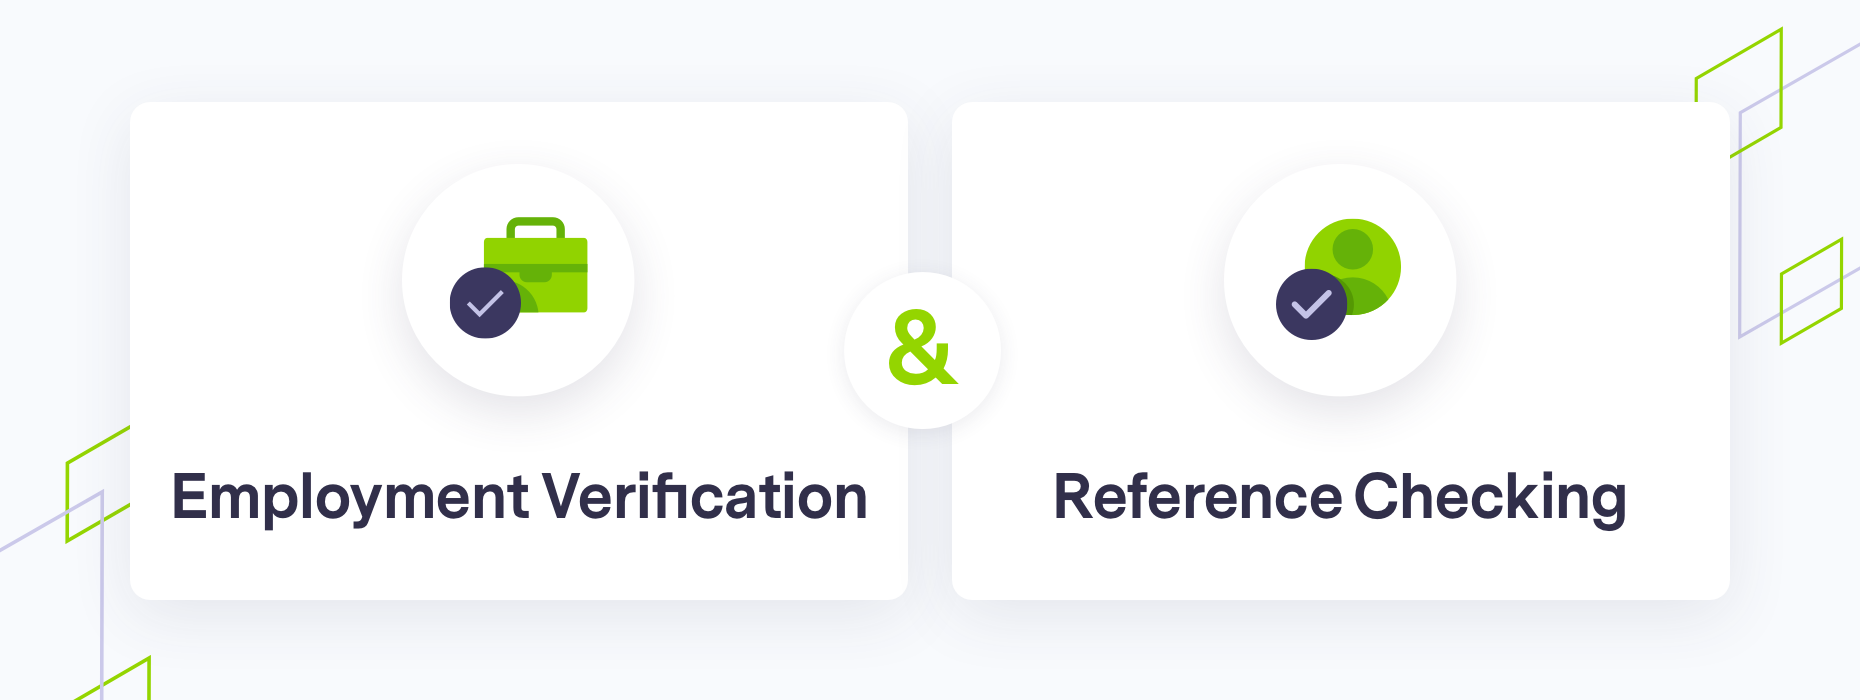 Image of verification and reference checking icons